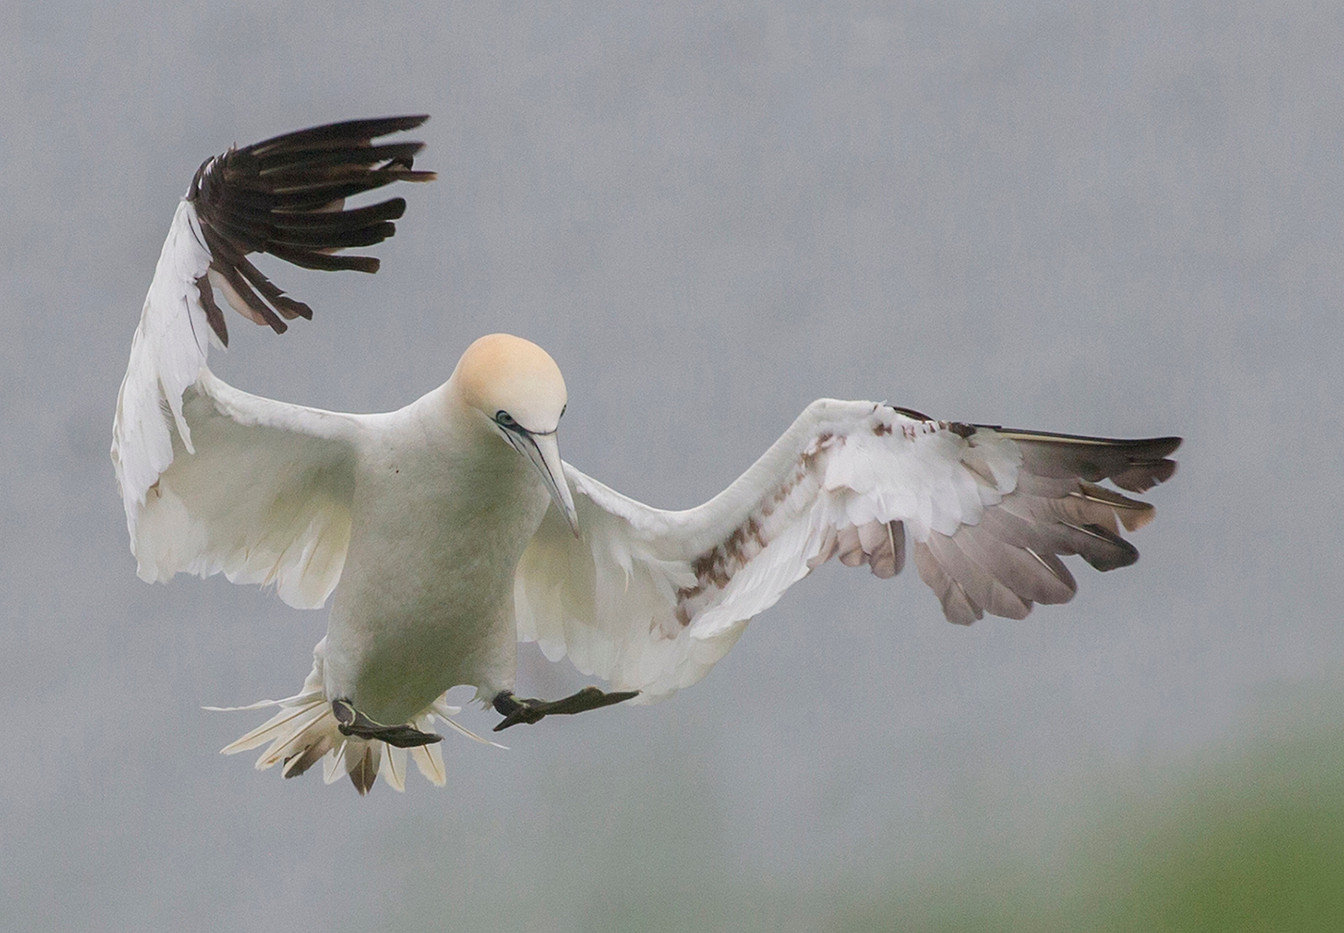 17 GANNET CLEAR TO LAND by John Hunt